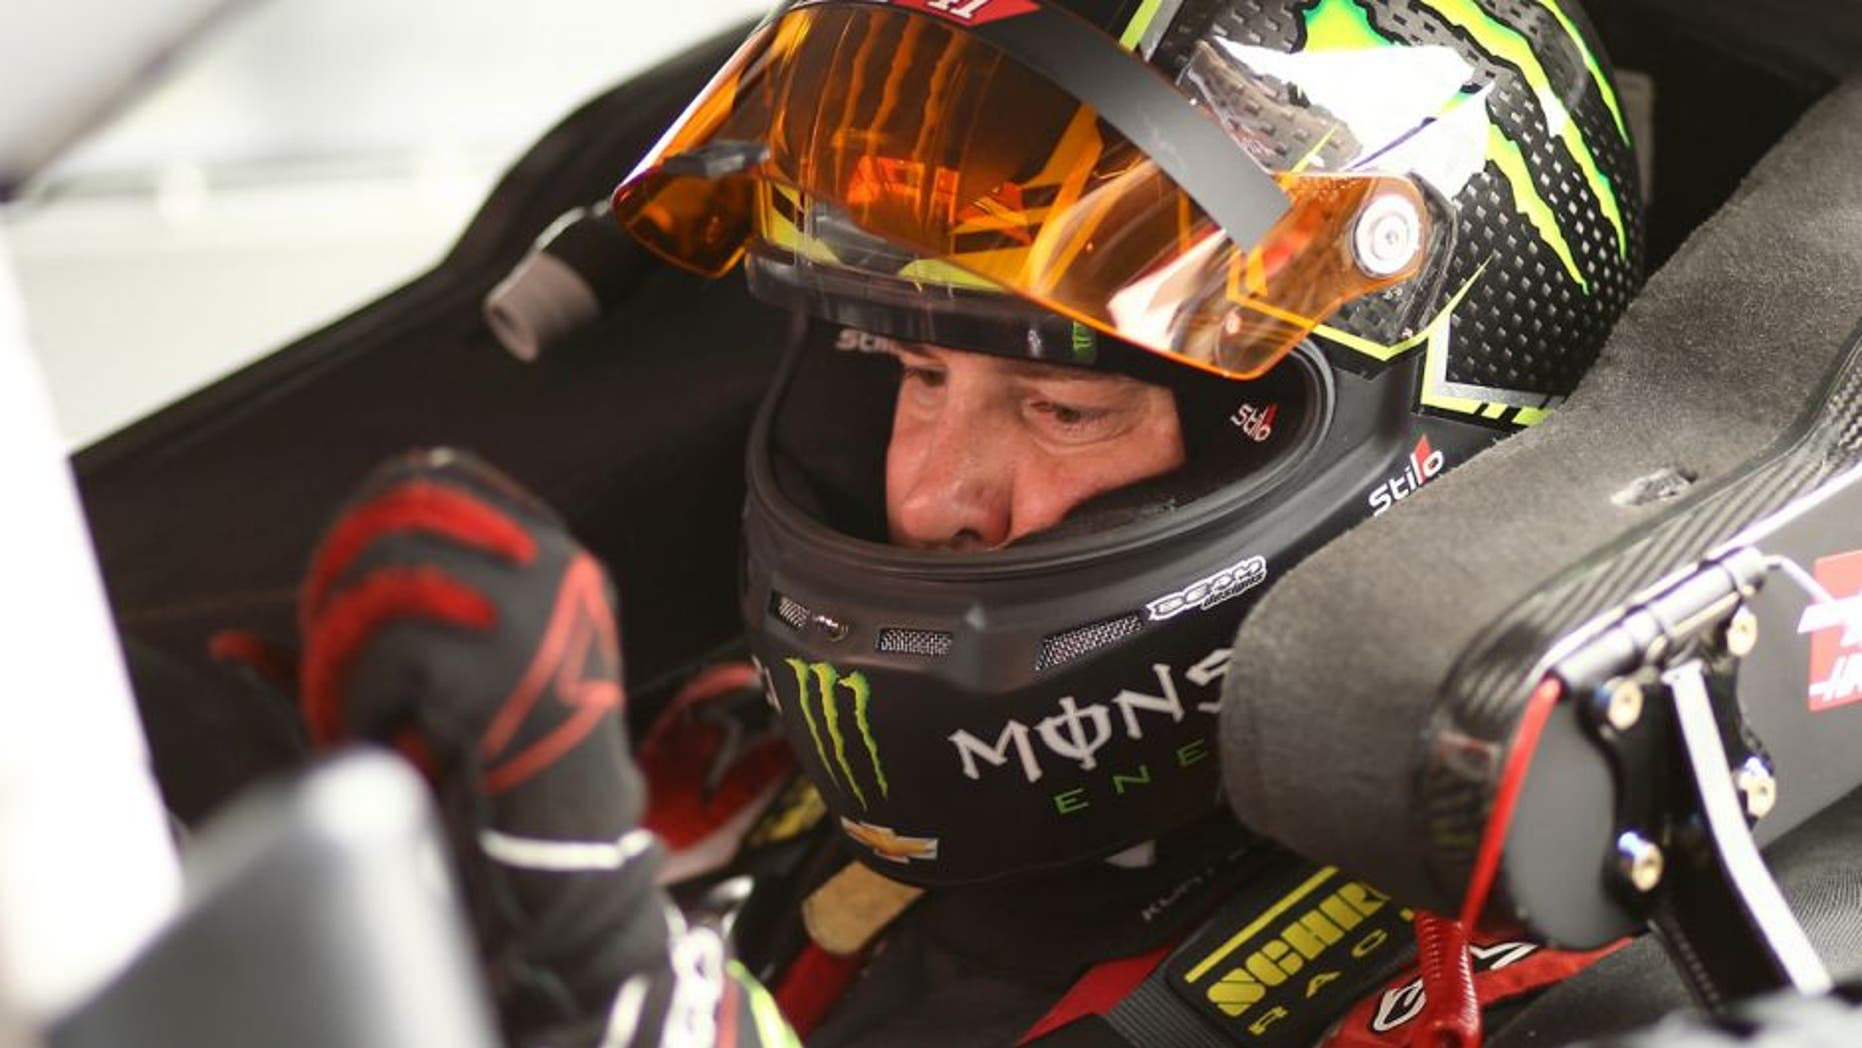 BROOKLYN, MI - JUNE 10: Kurt Busch, driver of the #41 Haas Automation/Monster Energy Chevrolet, sits in his car during practice for the NASCAR Sprint Cup Series FireKeepers Casino 400 at Michigan International Speedway on June 10, 2016 in Brooklyn, Michigan. (Photo by Rey Del Rio/Getty Images )